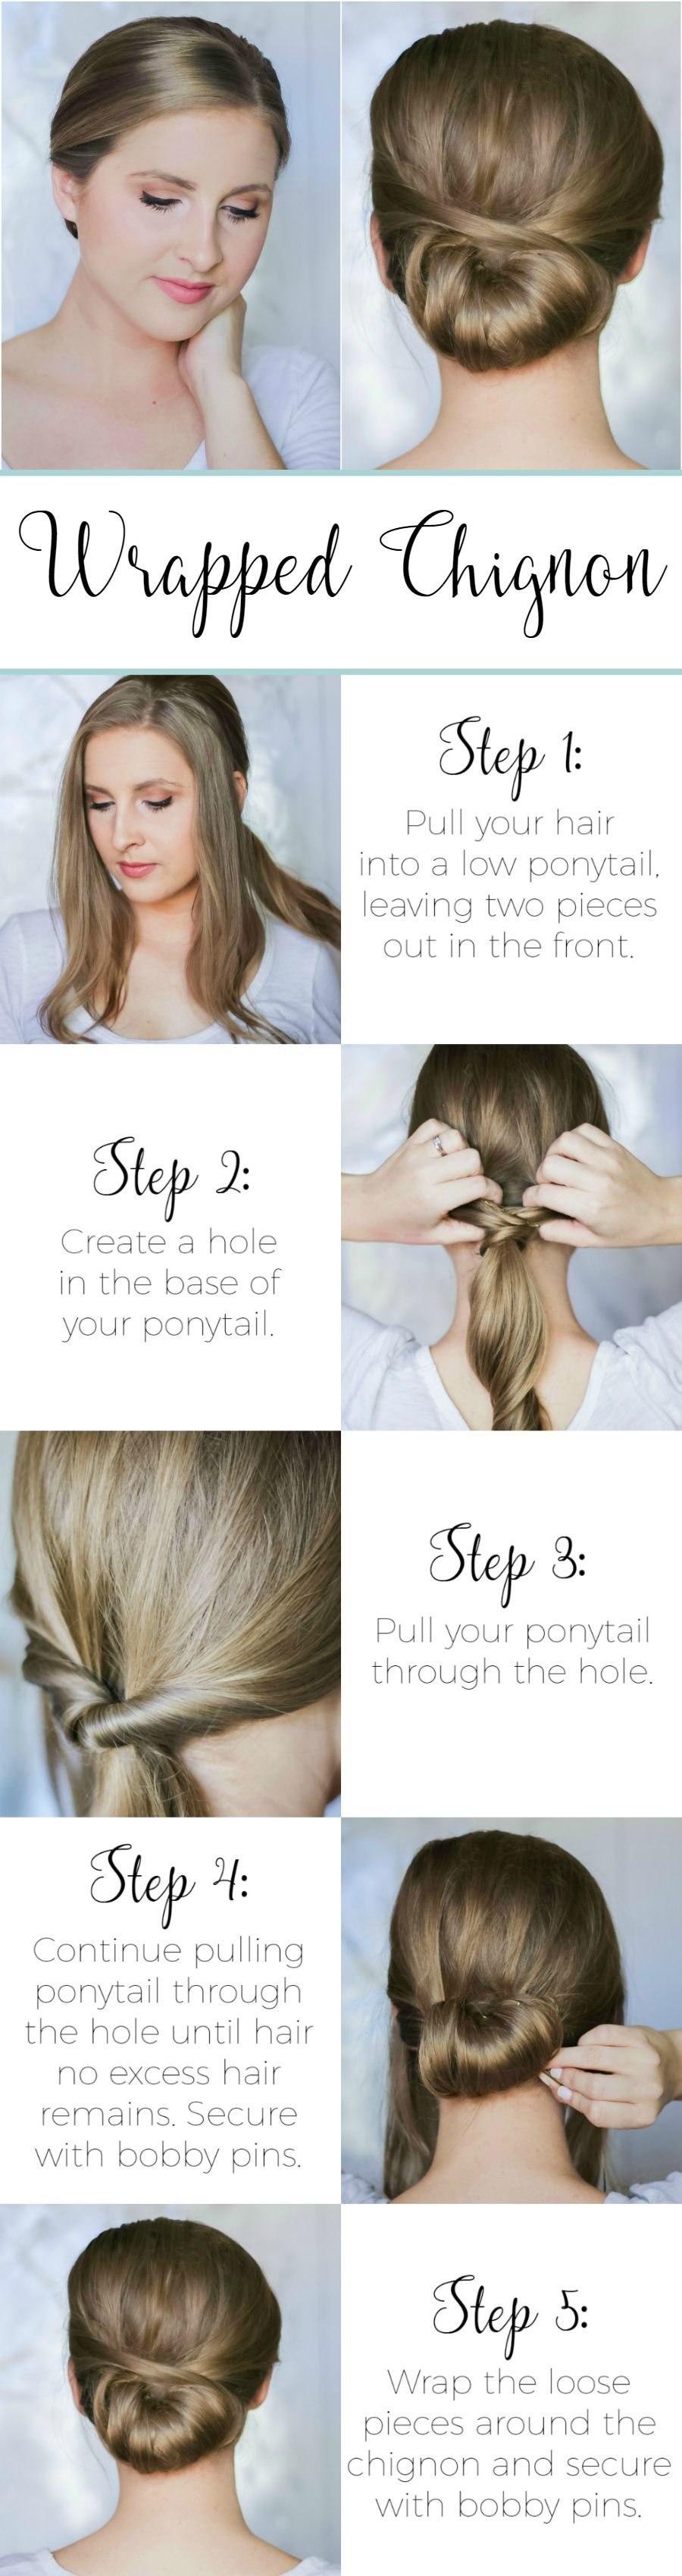 Easy secondday hairstyles chignons tutorials and hair style